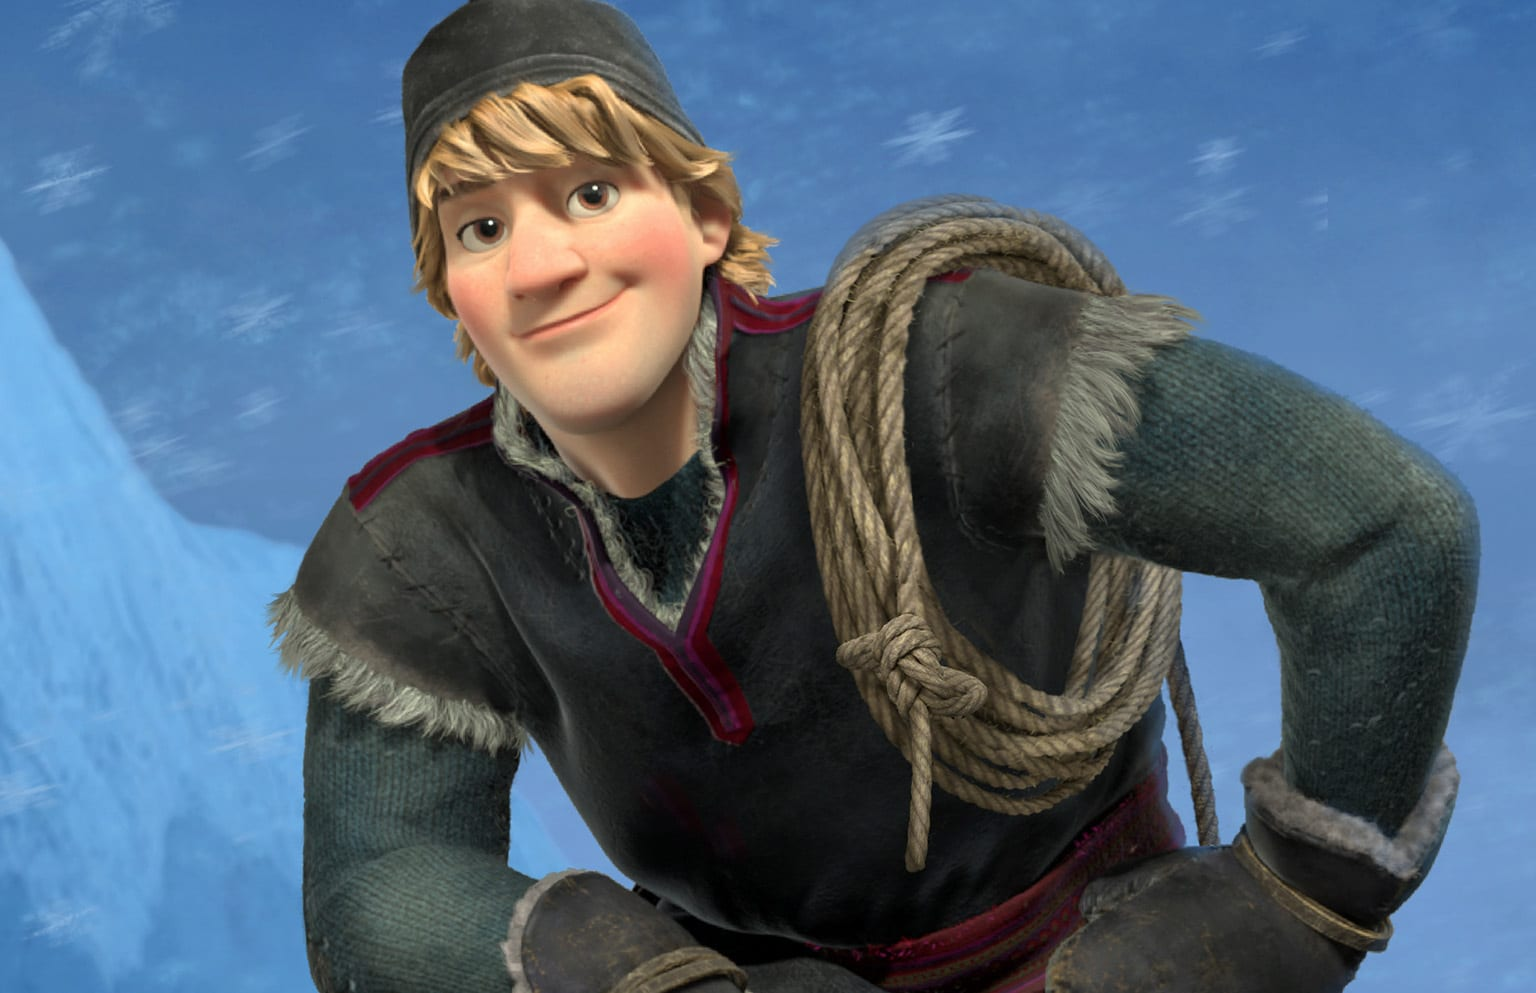 kristoff is a true outdoorsman he lives high up in the mountains where he harvests